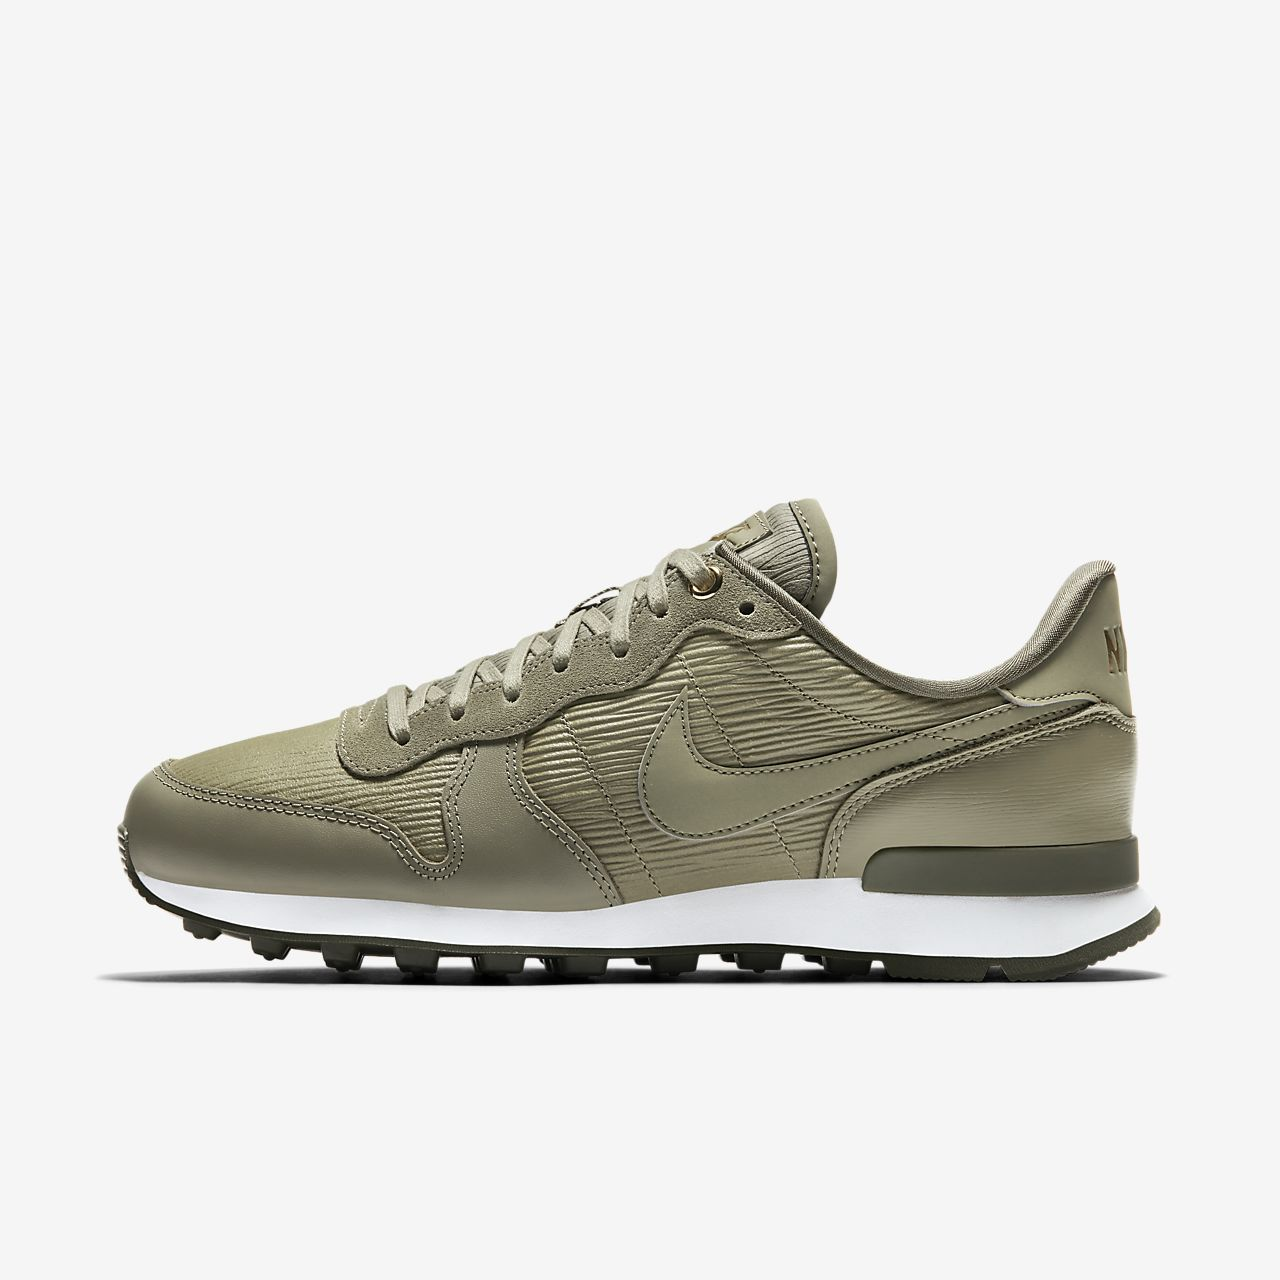 Free Shipping Footlocker Pictures Nike Internationalist Premium Women's Shoe Good Selling Online foY32VL